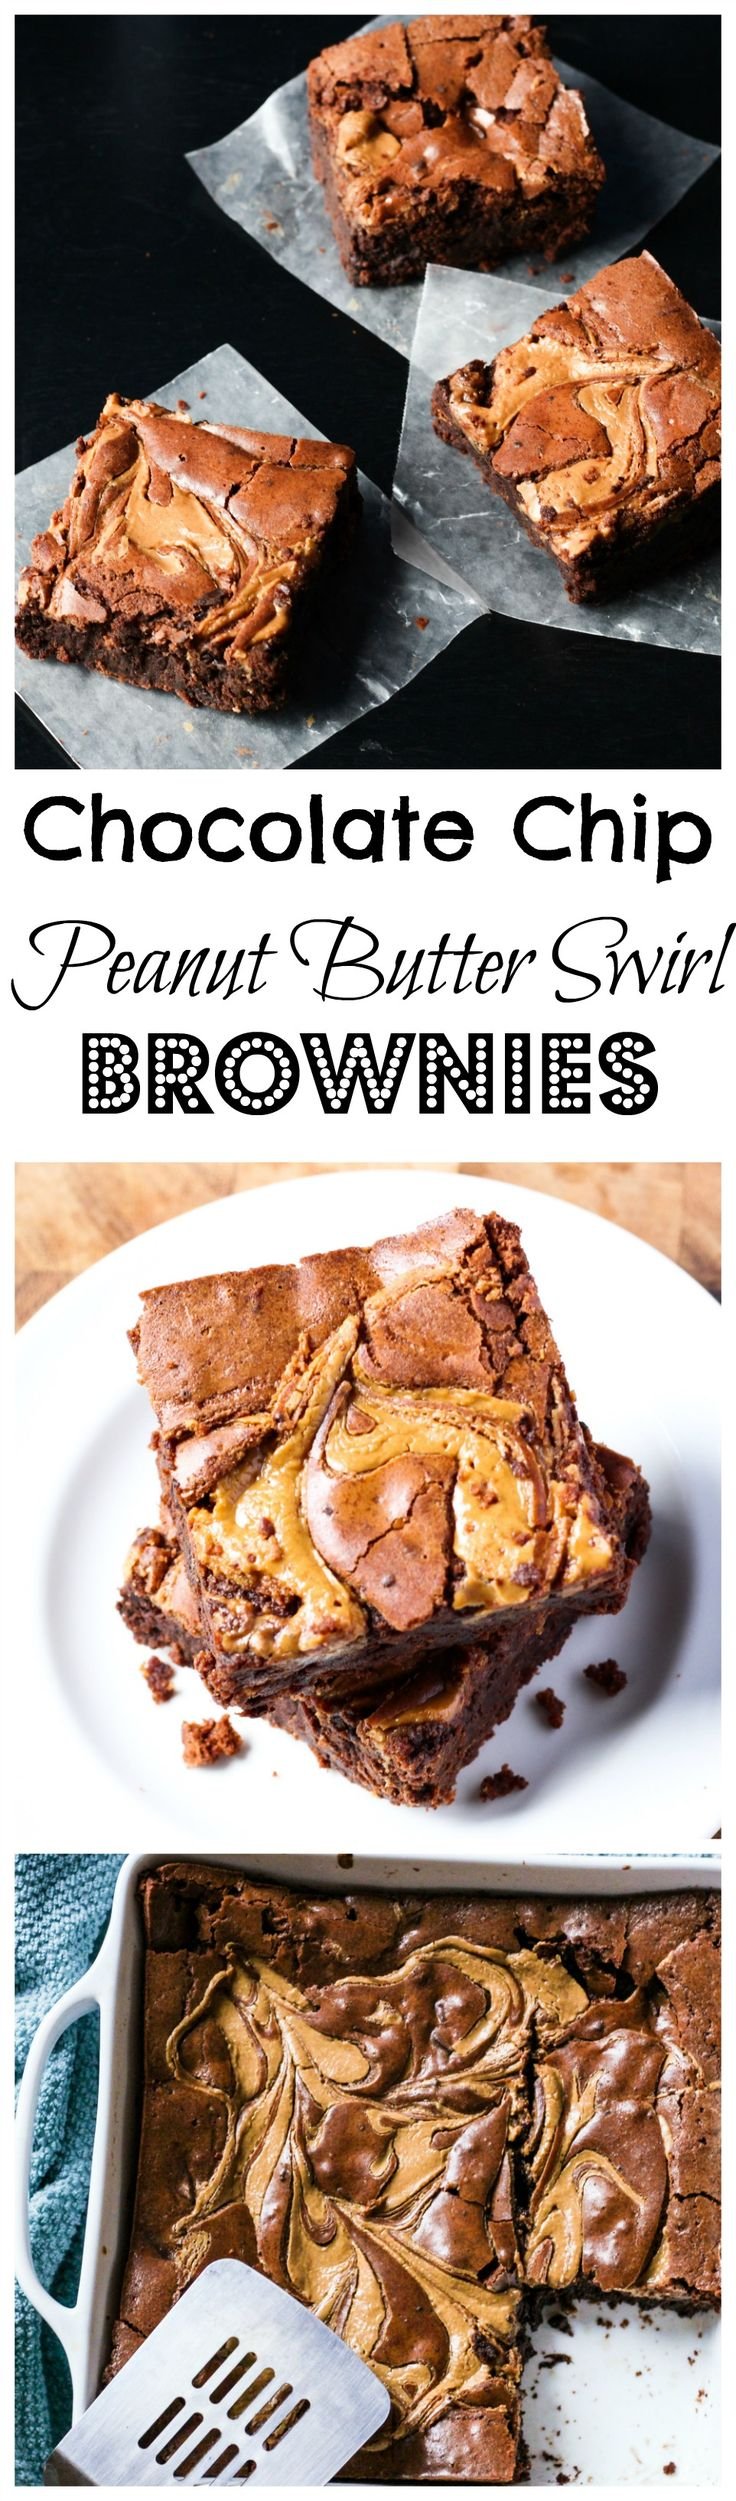 Chocolate Chip Peanut Butter Swirl Brownies - Rich, fudgy brownies with a crackly peanut buttery top.